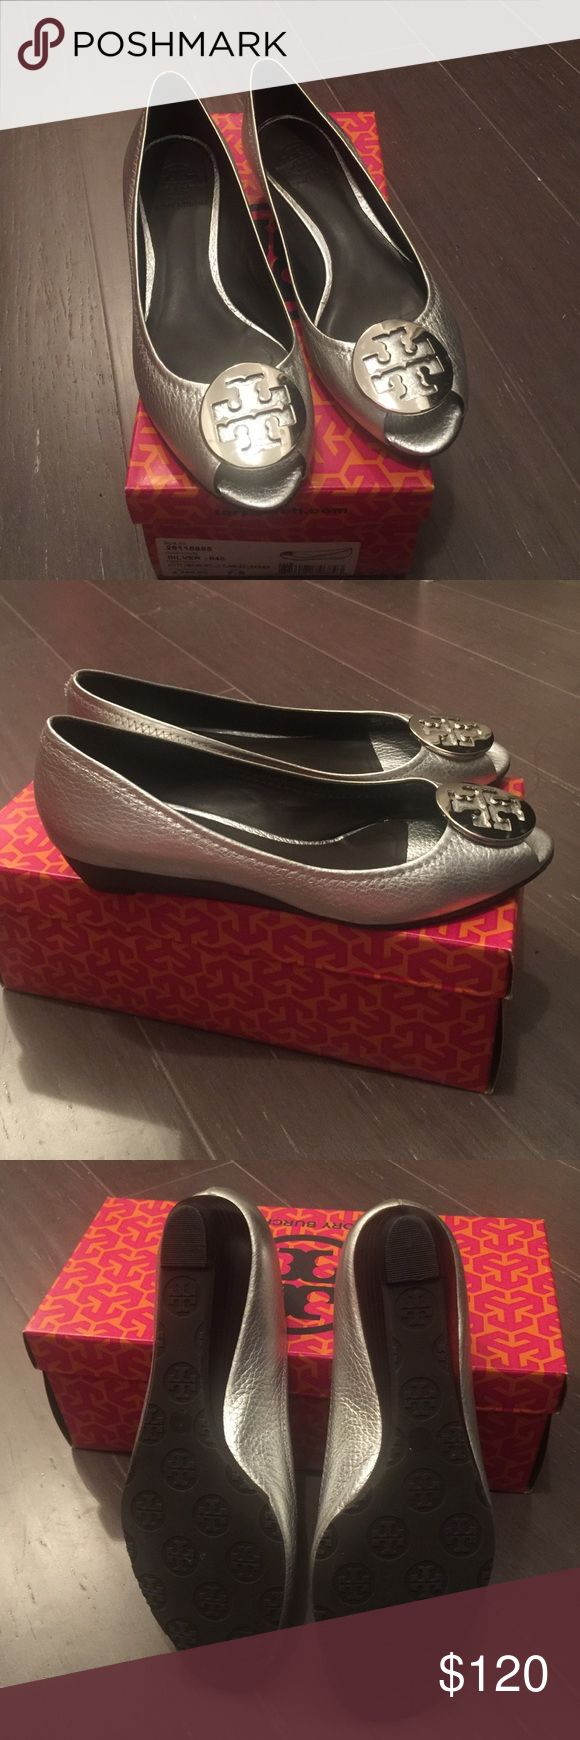 Tory Burch Metallic Wedges Tory Burch Kitty Wedge. Silver Metallic Tumbled Leather. Has been gently loved. Some small scratches on emblemed. Please see pics. Not noticeable when wearing. Tory Burch Shoes Wedges